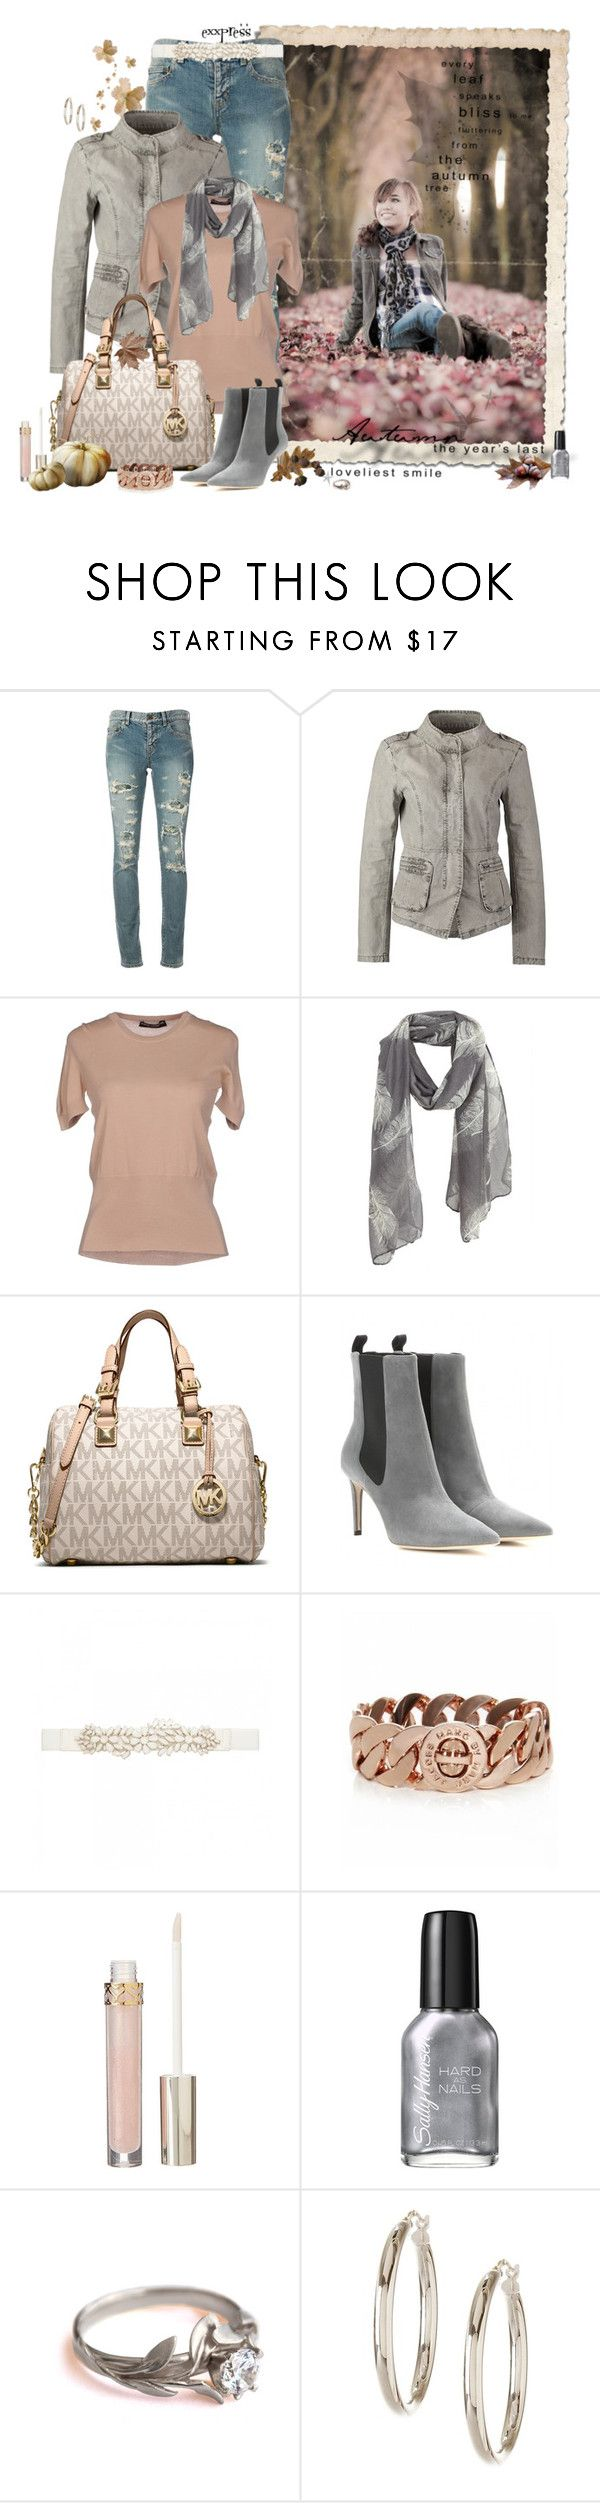 """""""The Softer Side of Fall"""" by exxpress ❤ liked on Polyvore featuring Fantasia, Yves Saint Laurent, ONLY, Dolce&Gabbana, MICHAEL Michael Kors, Balenciaga, Forever New, Marc by Marc Jacobs, Stila and Sally Hansen"""